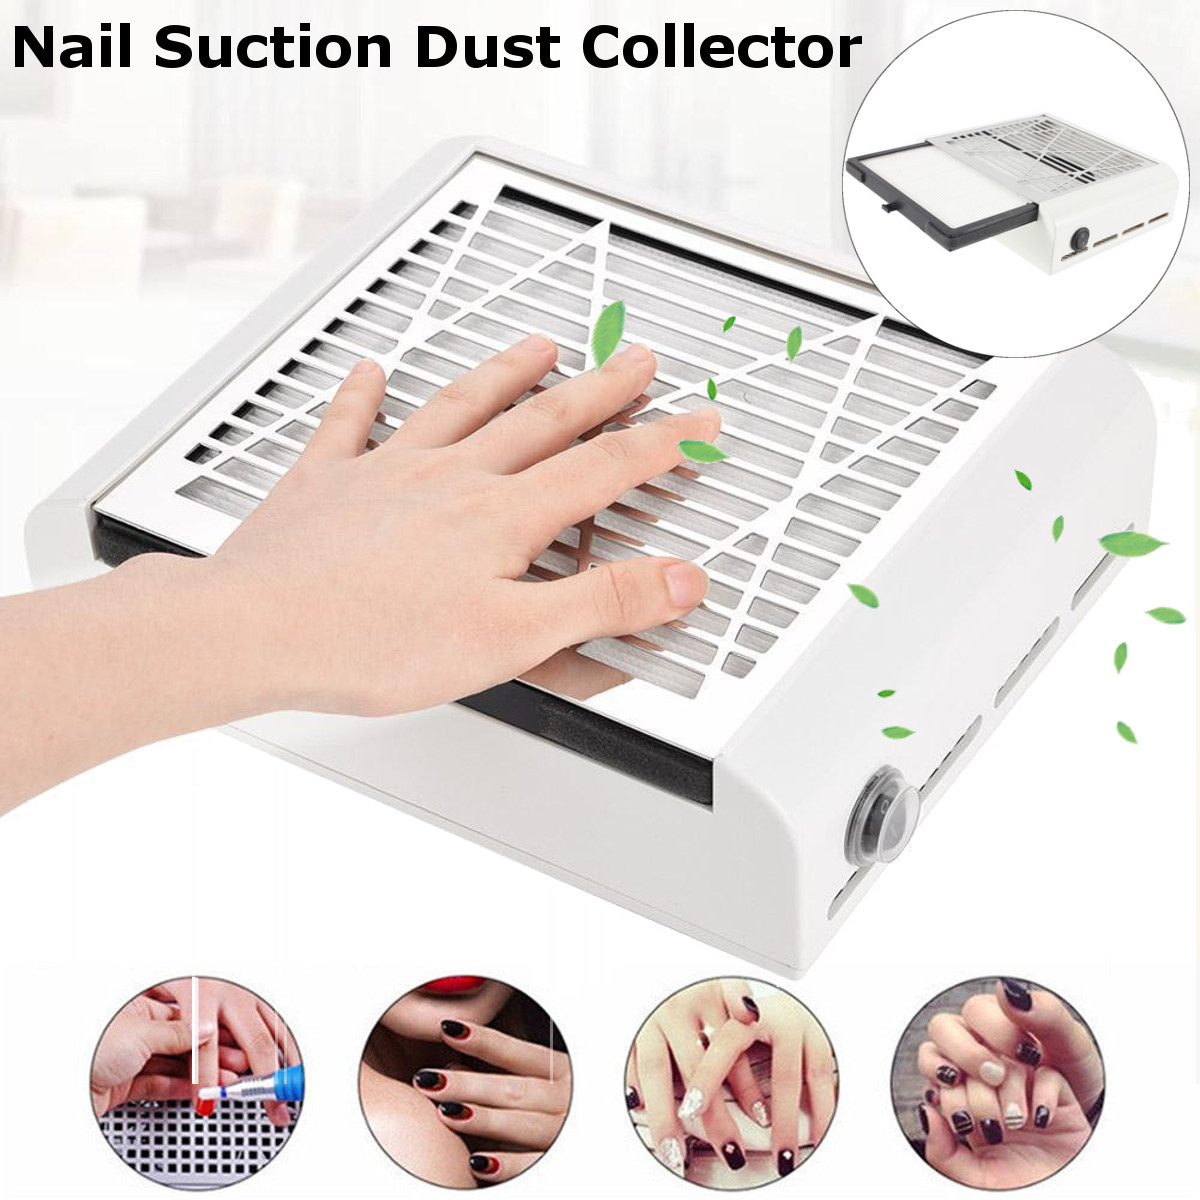 110V/220V Strong Power Nail Fan Art Salon Suction Dust Collector 40W Nail Dust Collector Machine Vacuum Cleaner UV Gel Machine 24w nail fan art salon suction dust collector machine vacuum cleaner salon tool acrylic uv gel machine nail dust collector